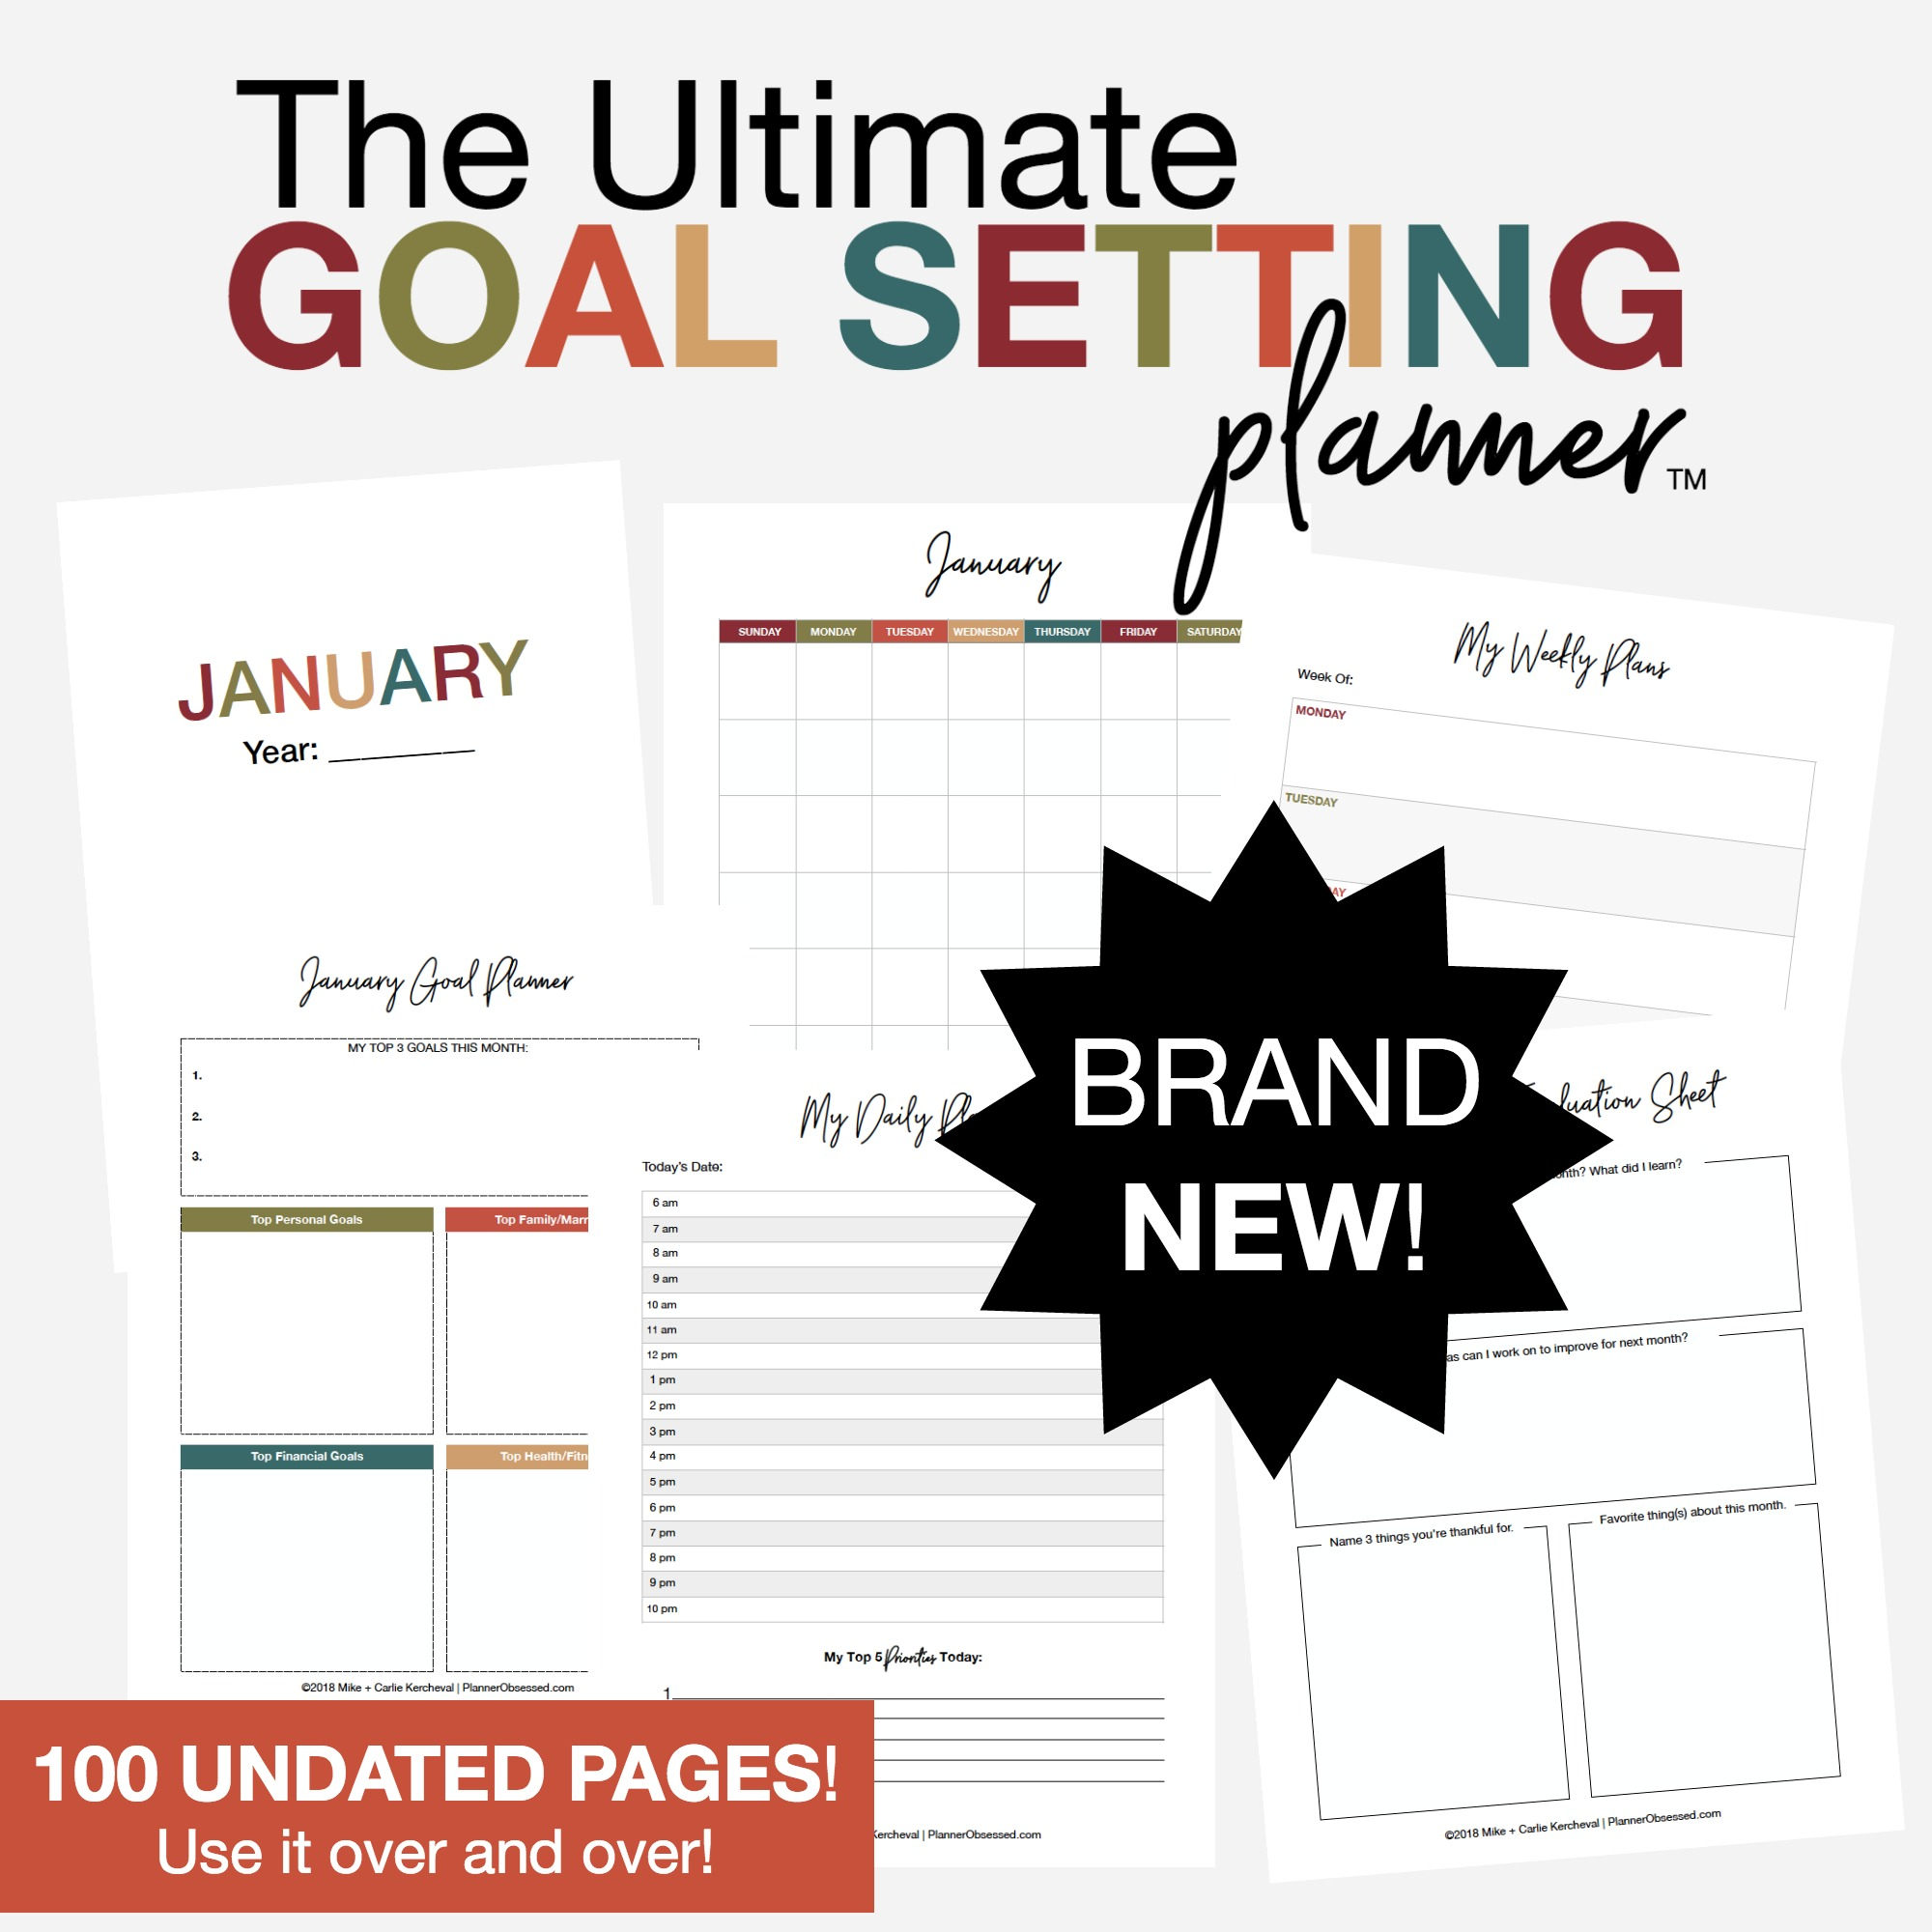 Looking to accomplish more this year? Come grab your copy of the The Ultimate Goal Setting Planner™!